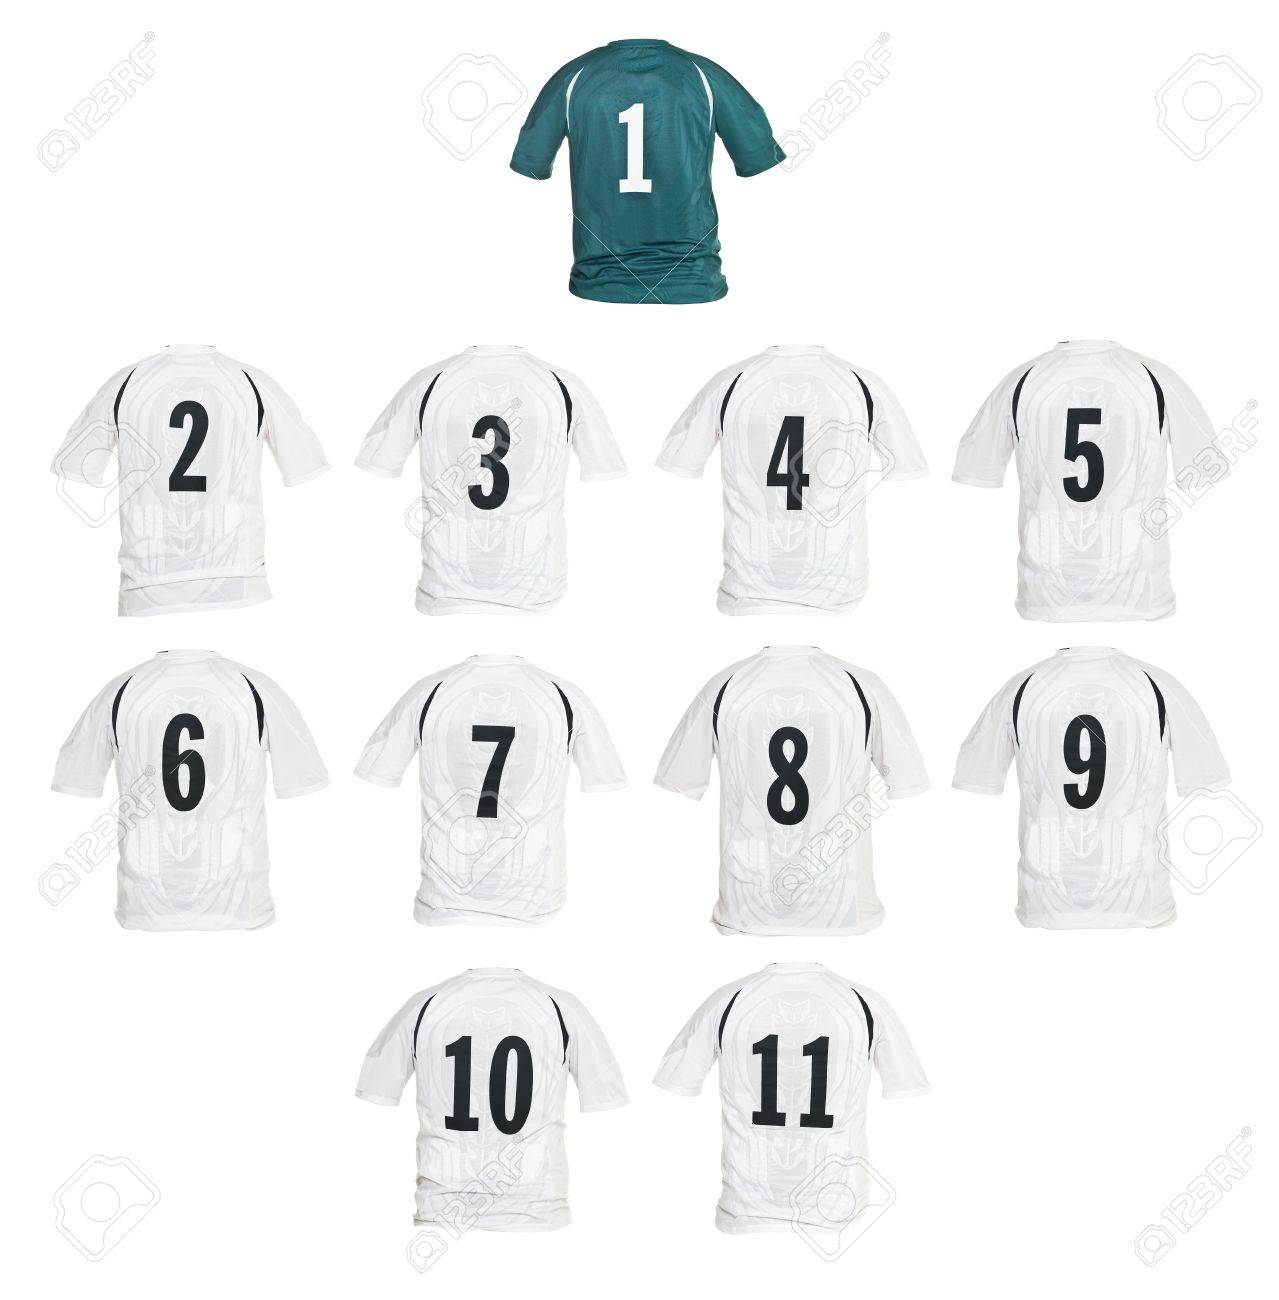 Football shirts formed as a team isolated on white background Stock Photo - 7780282